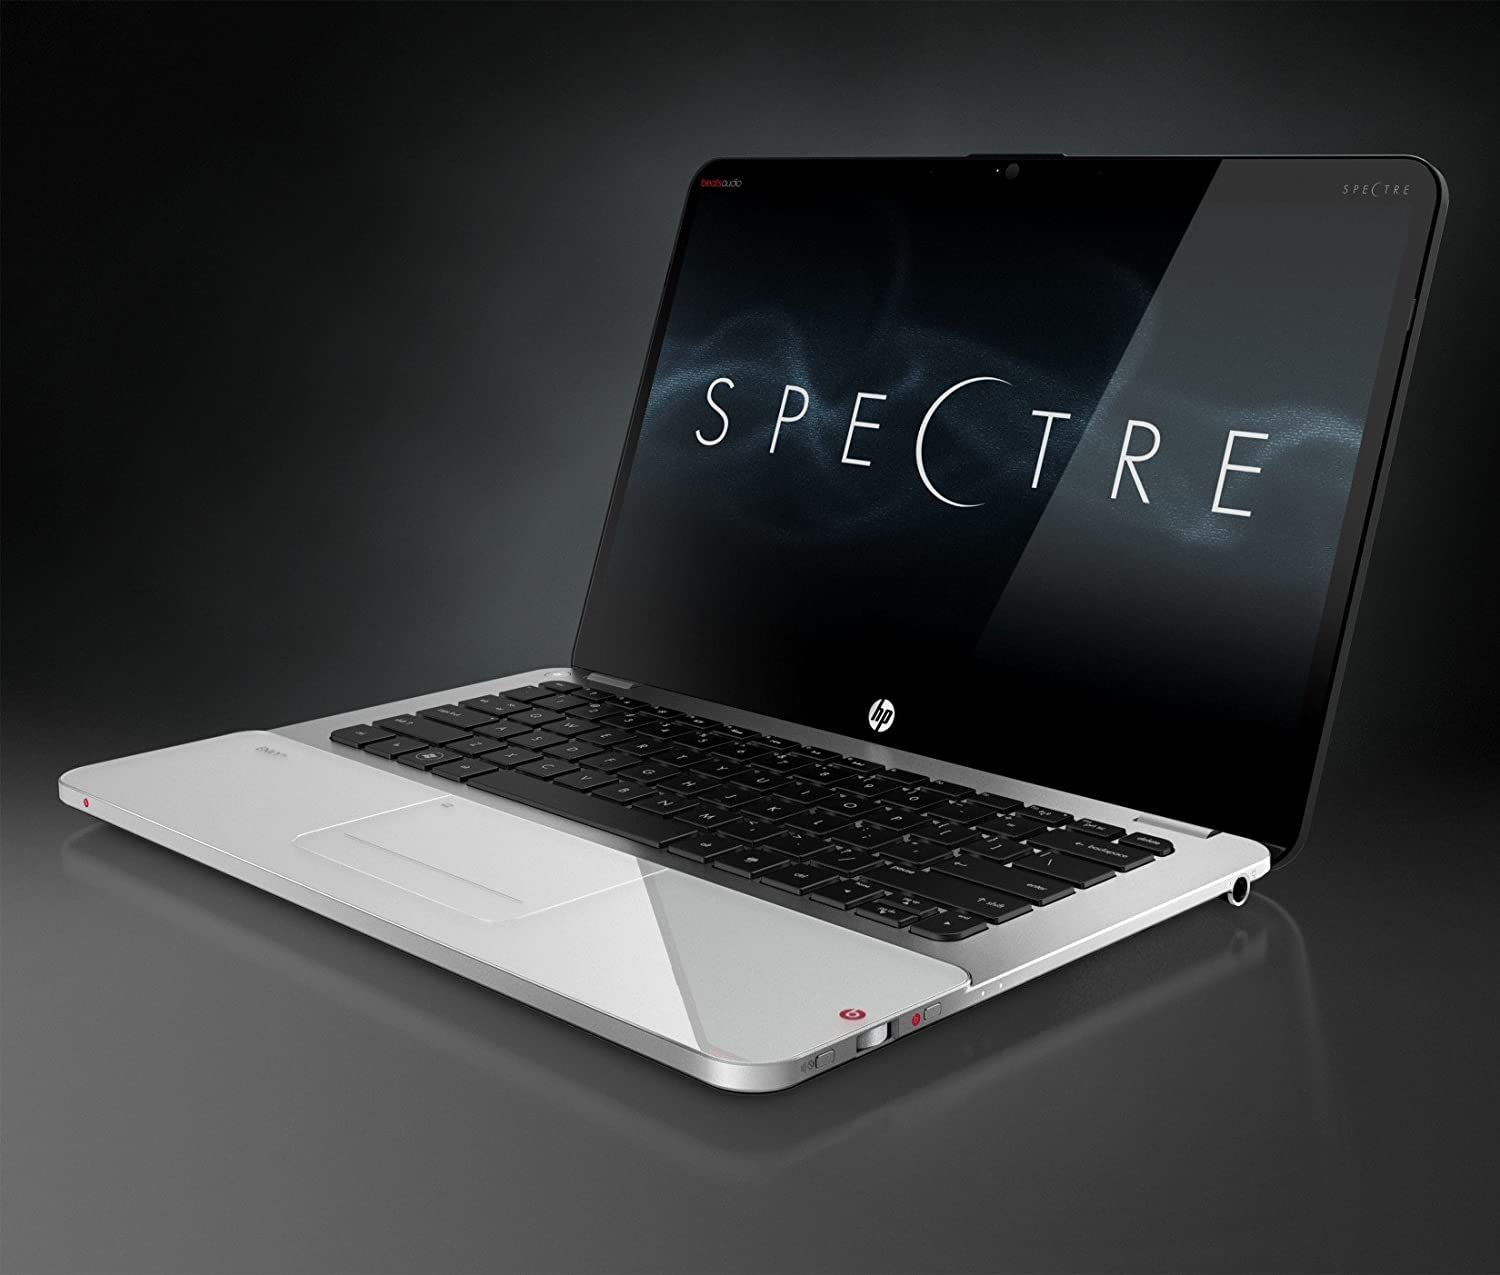 HP SPECTRE 14-3113TU INTEL BLUETOOTH DRIVER WINDOWS XP